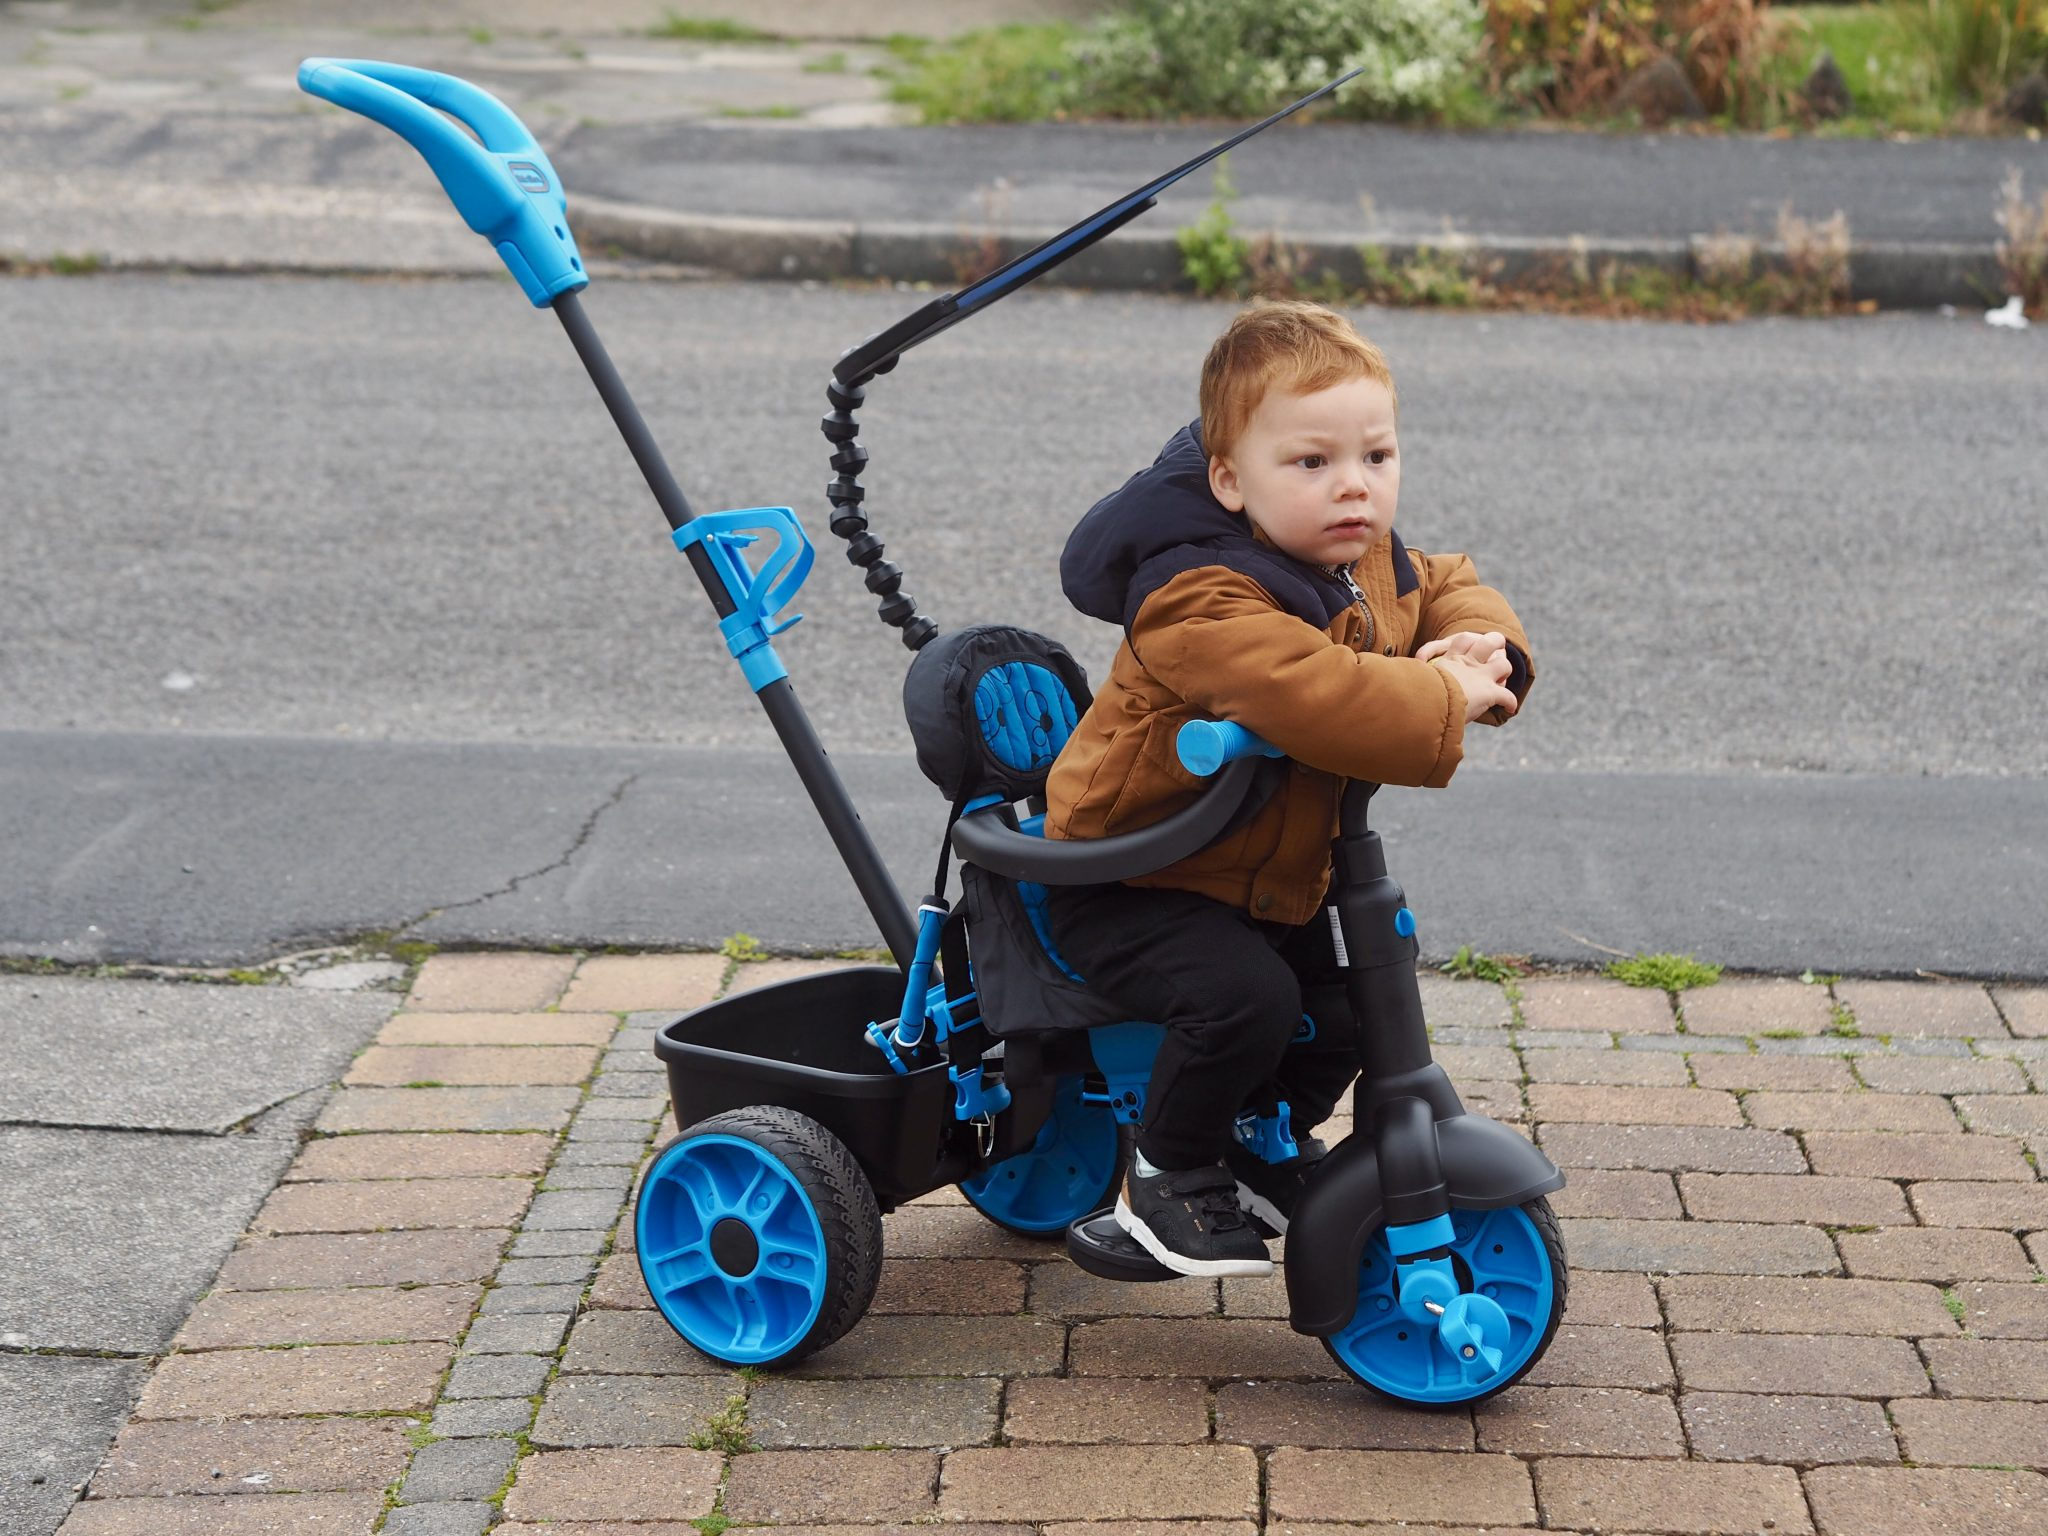 Toddlers trike review - pretty big butterflies